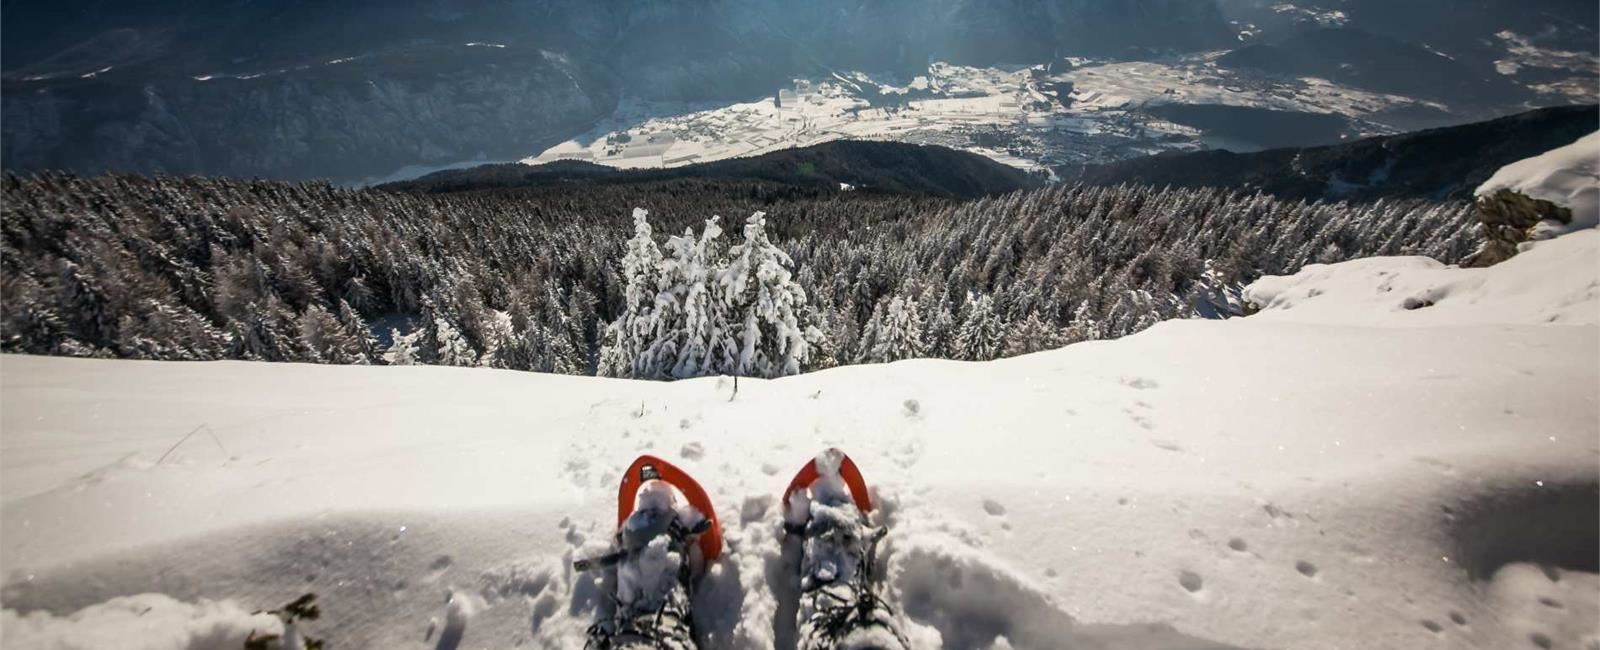 MANY SPORTS TO ENJOY THE WINTER IN VALSUGANA